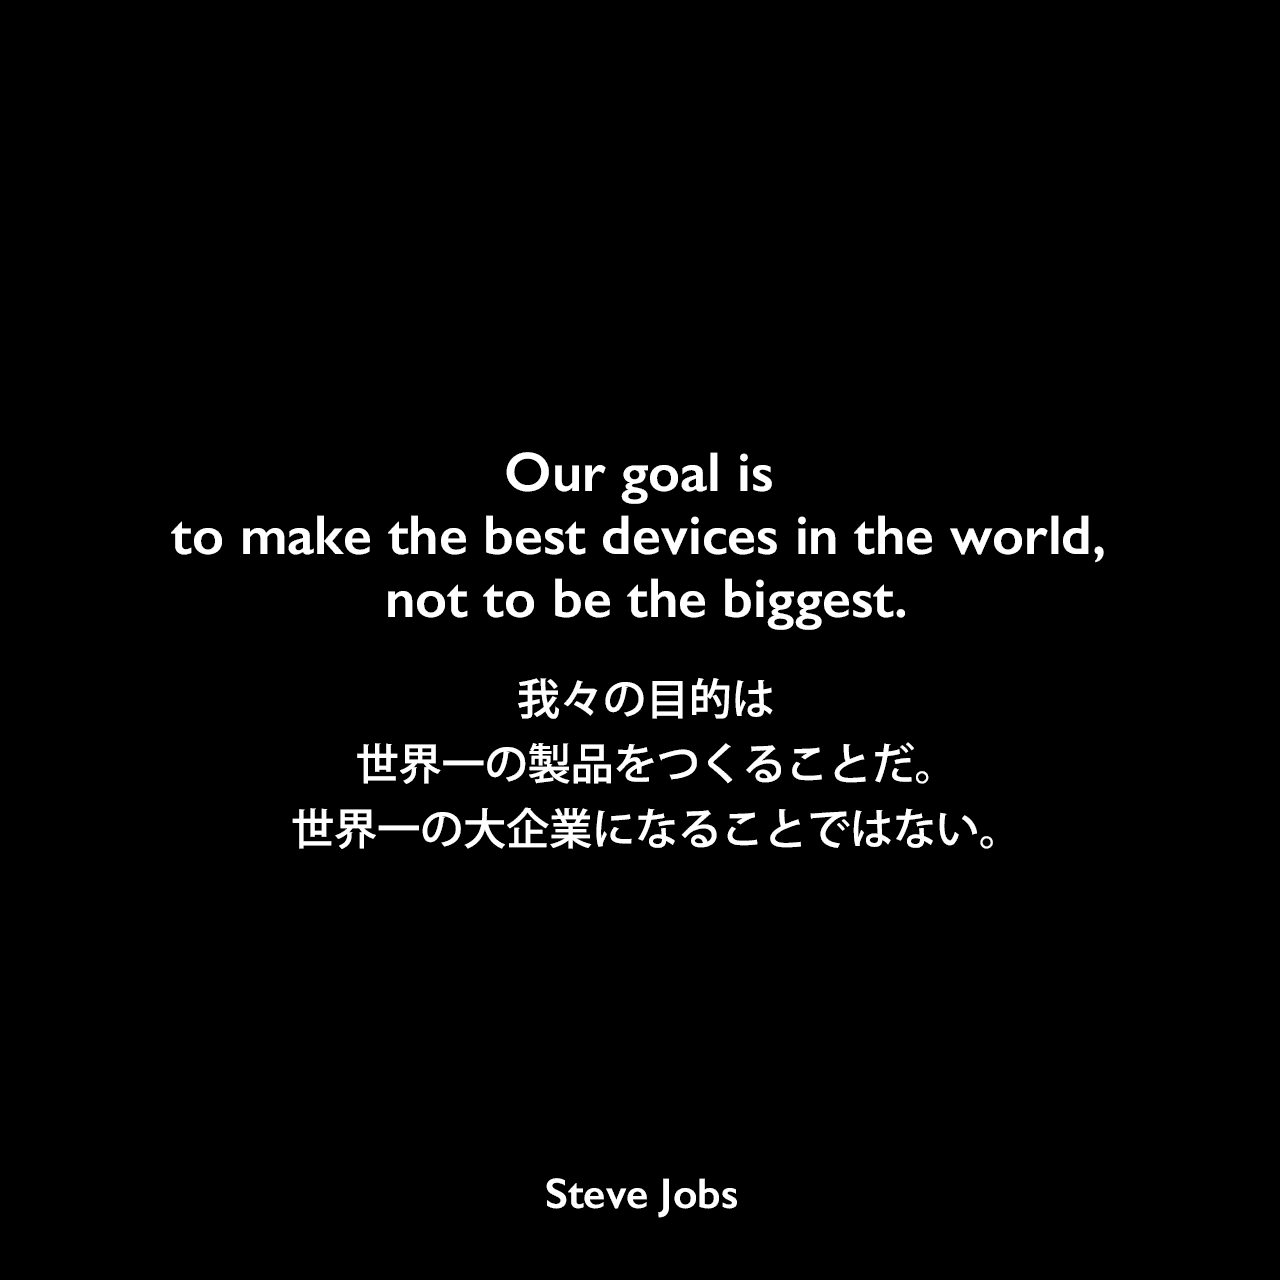 Our goal is to make the best devices in the world, not to be the biggest.我々の目的は世界一の製品をつくることだ。世界一の大企業になることではない。Steve Jobs